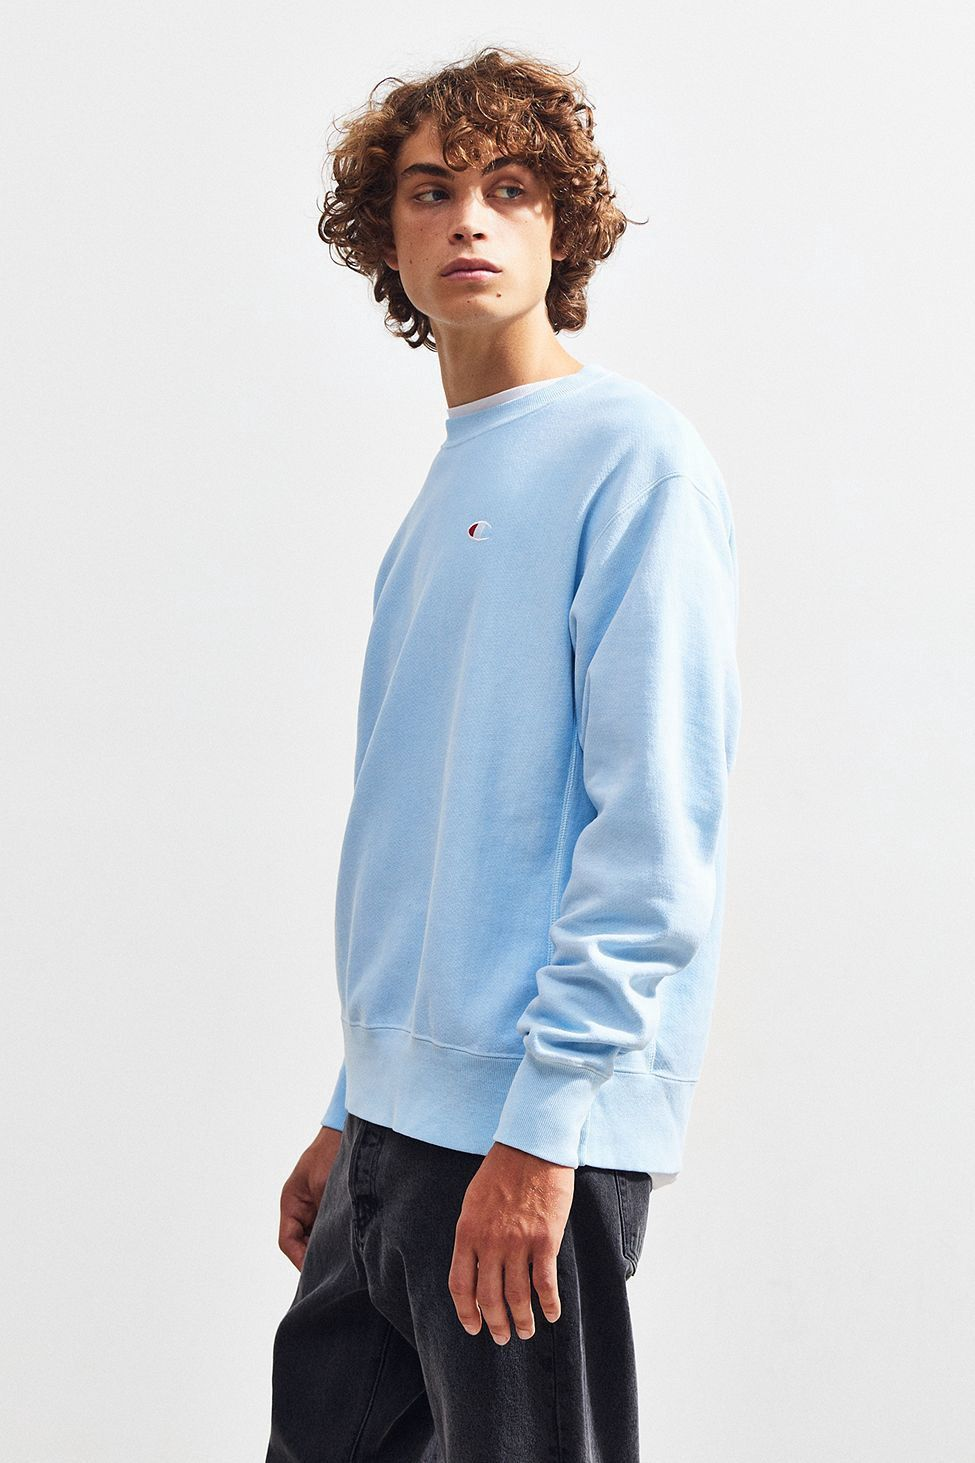 86fc7a08 Urban Outfitters Champion Reverse Weave Pigment Dye Crew Neck Sweatshirt -  Teal Xl